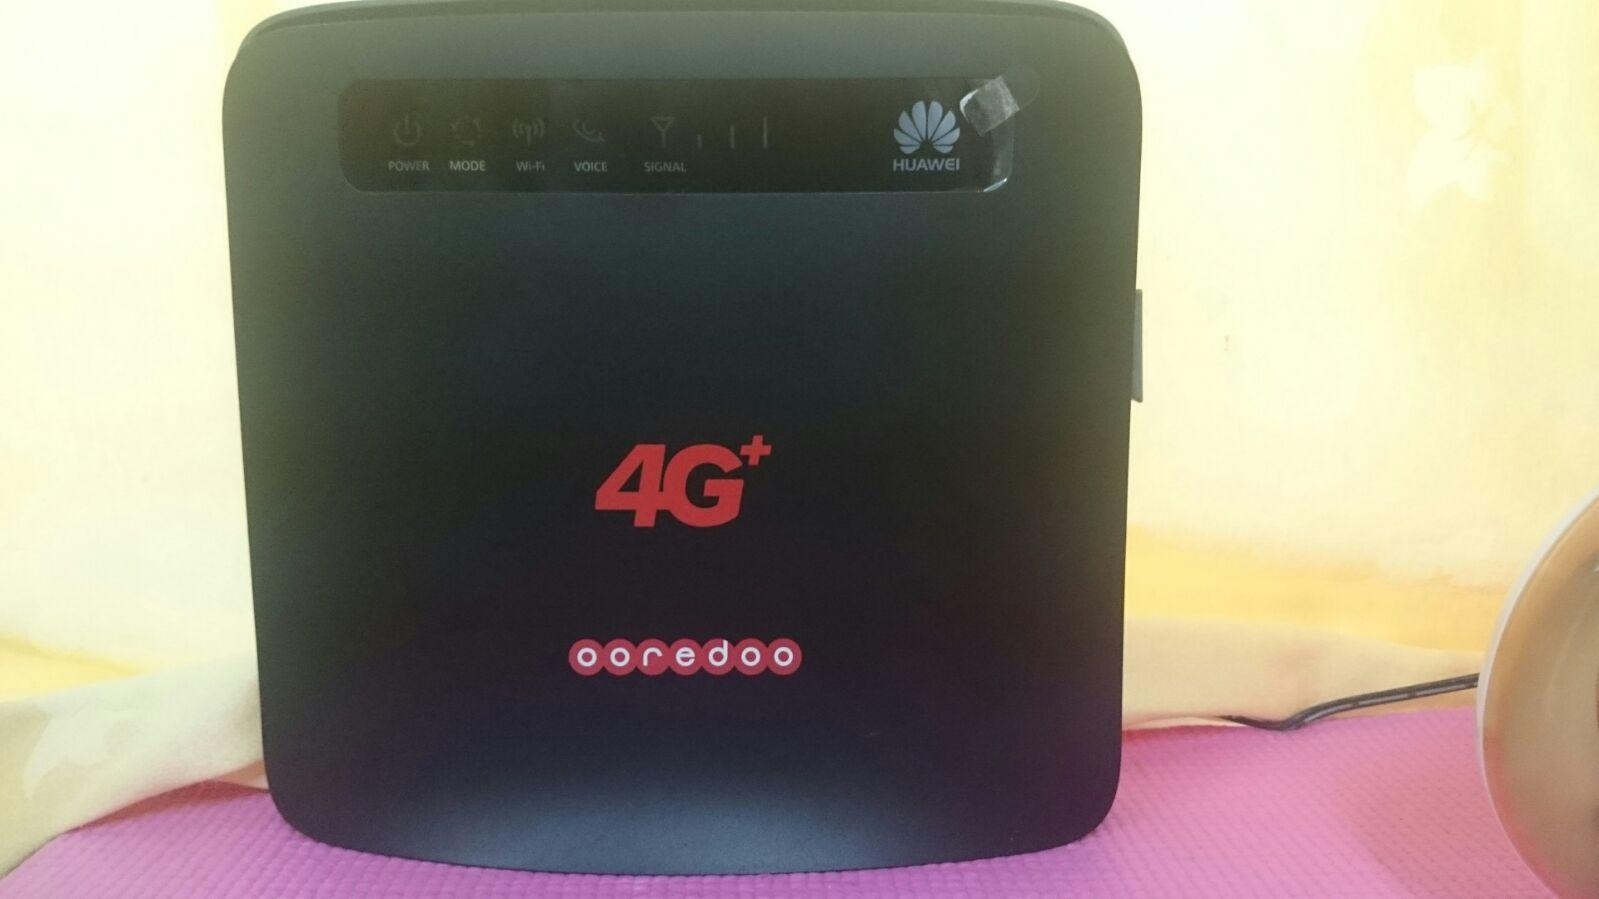 ooredoo 4g+ internet router | Qatar Living